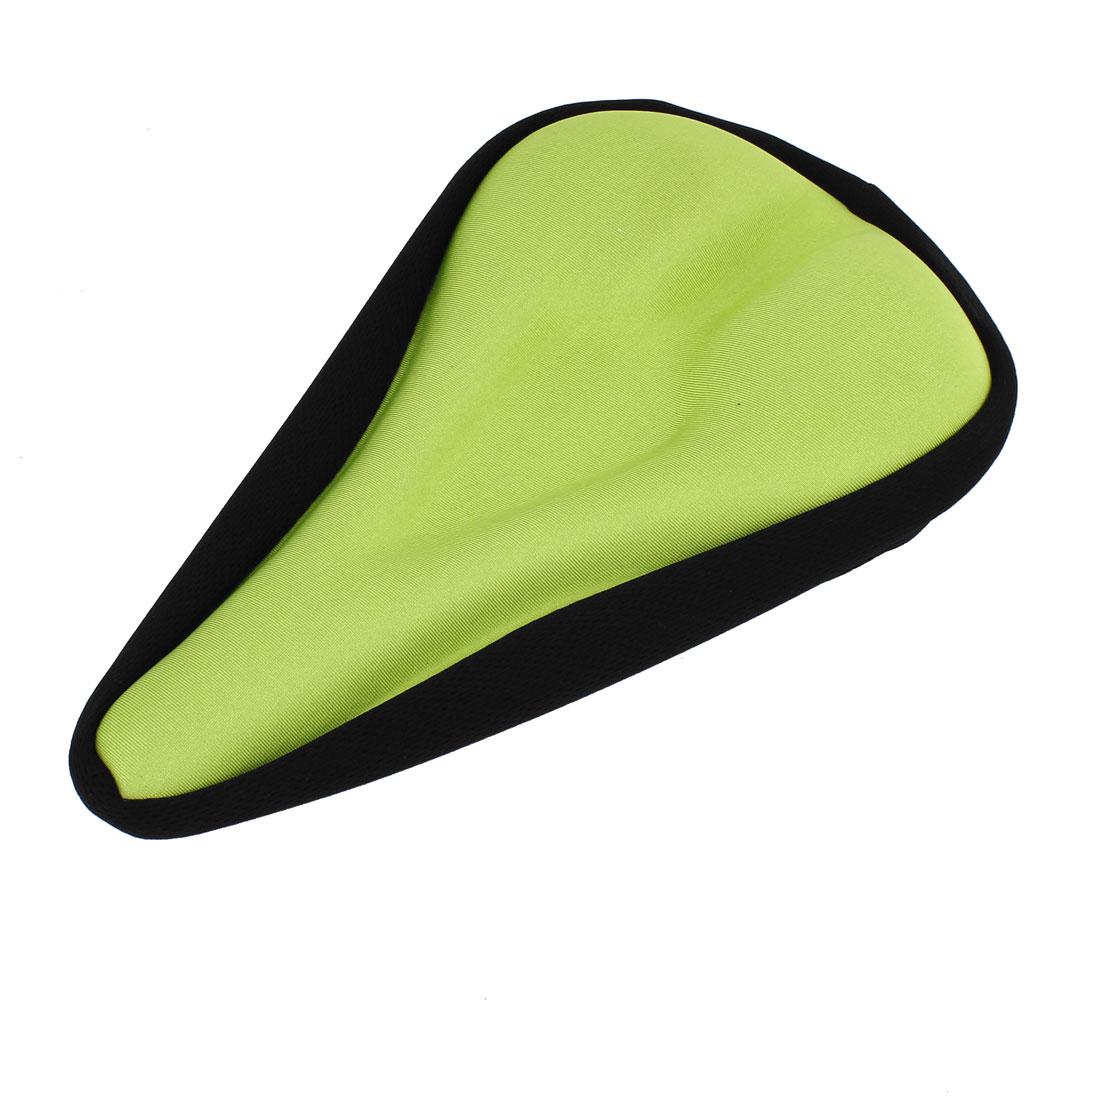 Green Black Nylon Coated Soft Silicone Bicycle Cycling Riding Seat Saddle Cushion